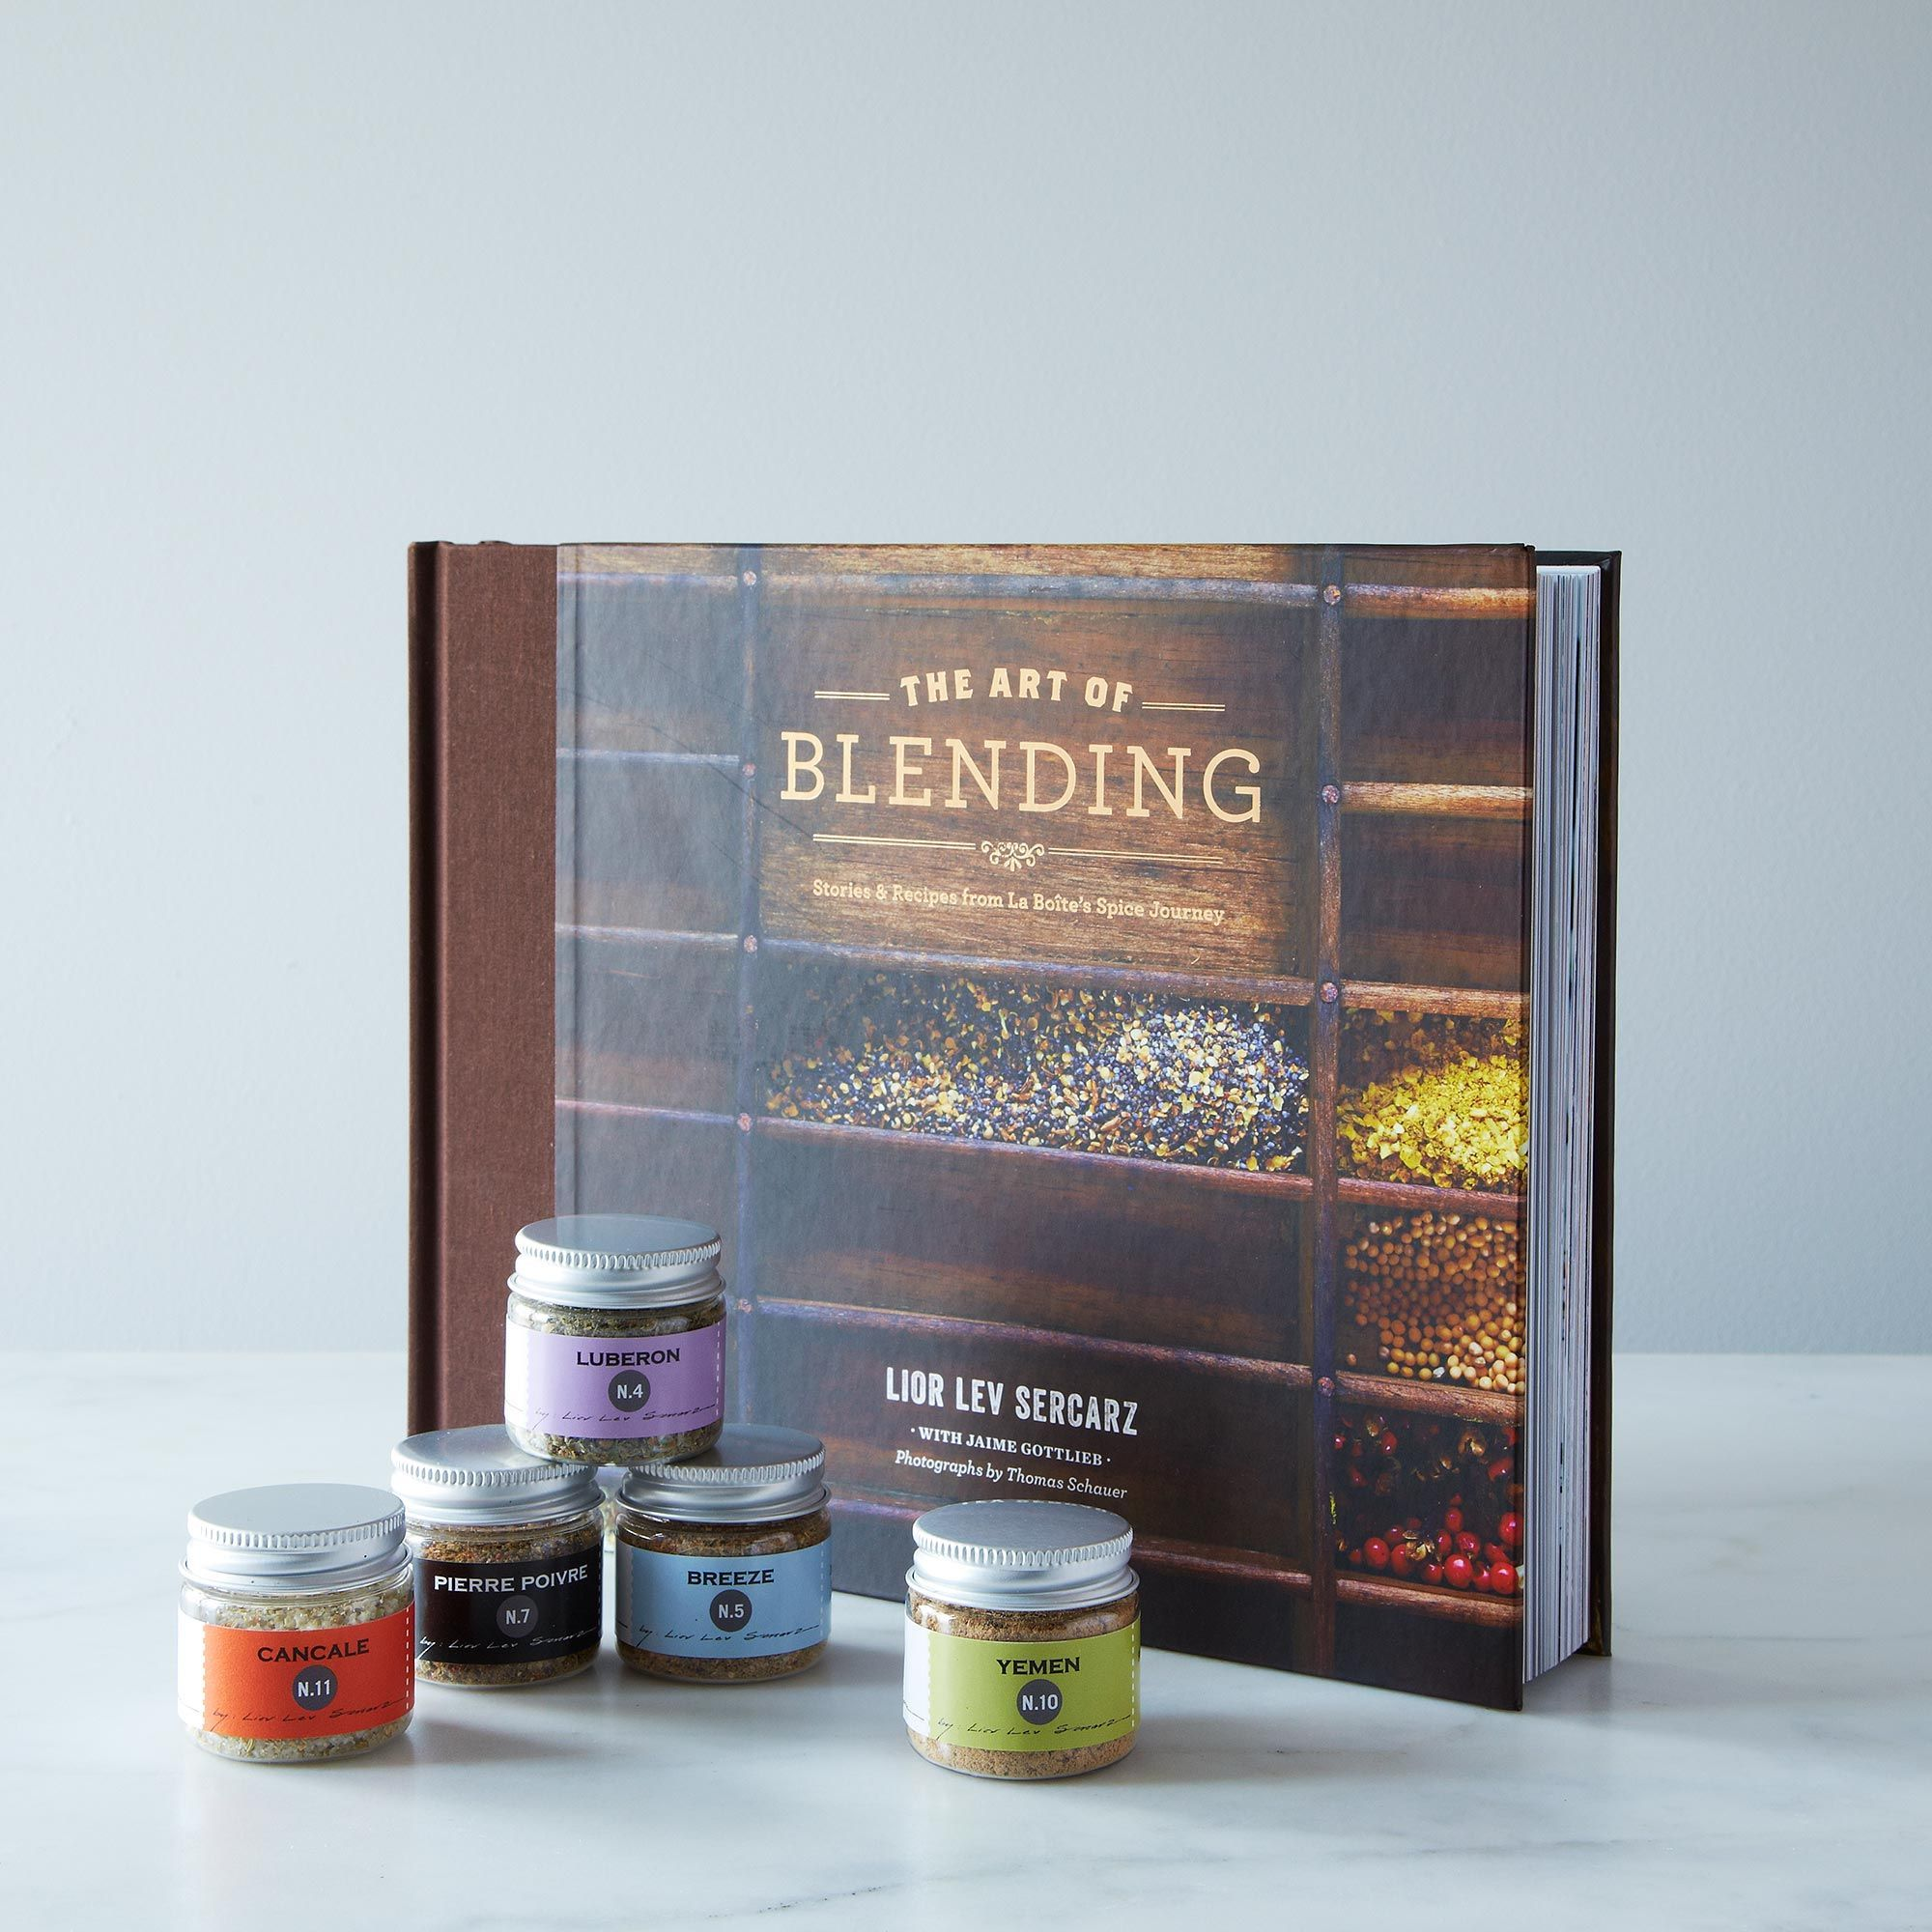 E4168310 c031 40a4 a06c eb7766899241  2013 0529 la boite a epice the art of blending book 5 spice blends gift set 007